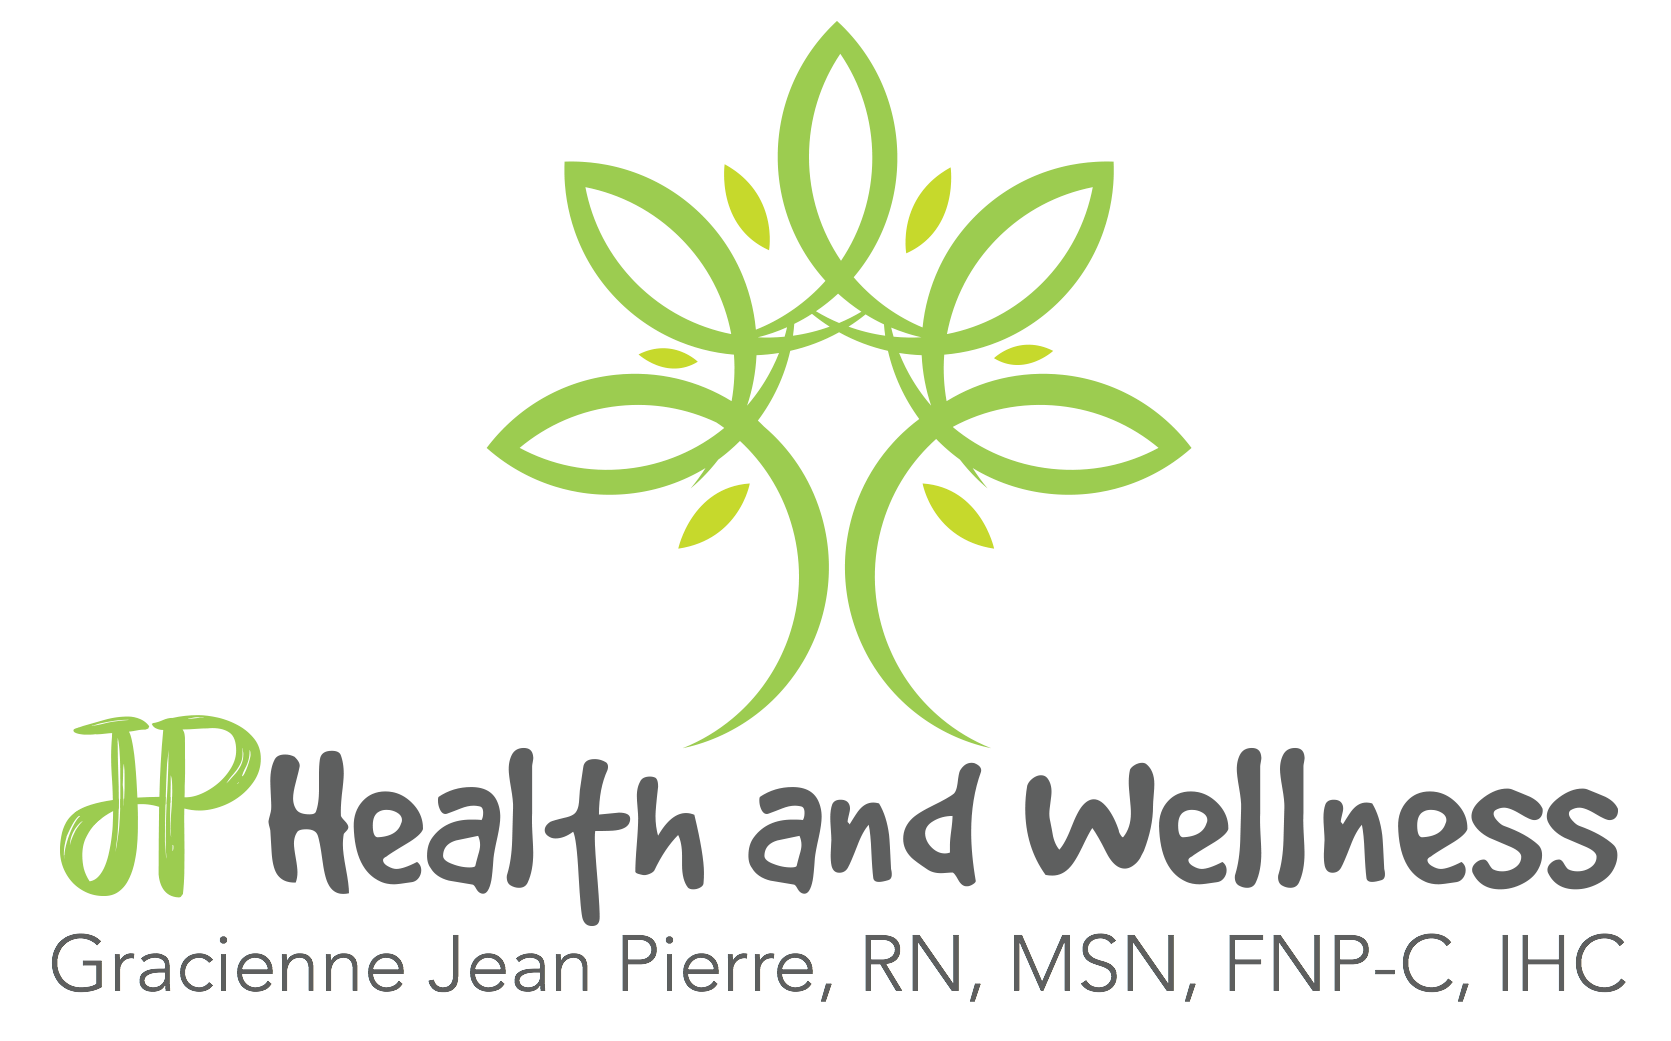 JP Health & Wellness